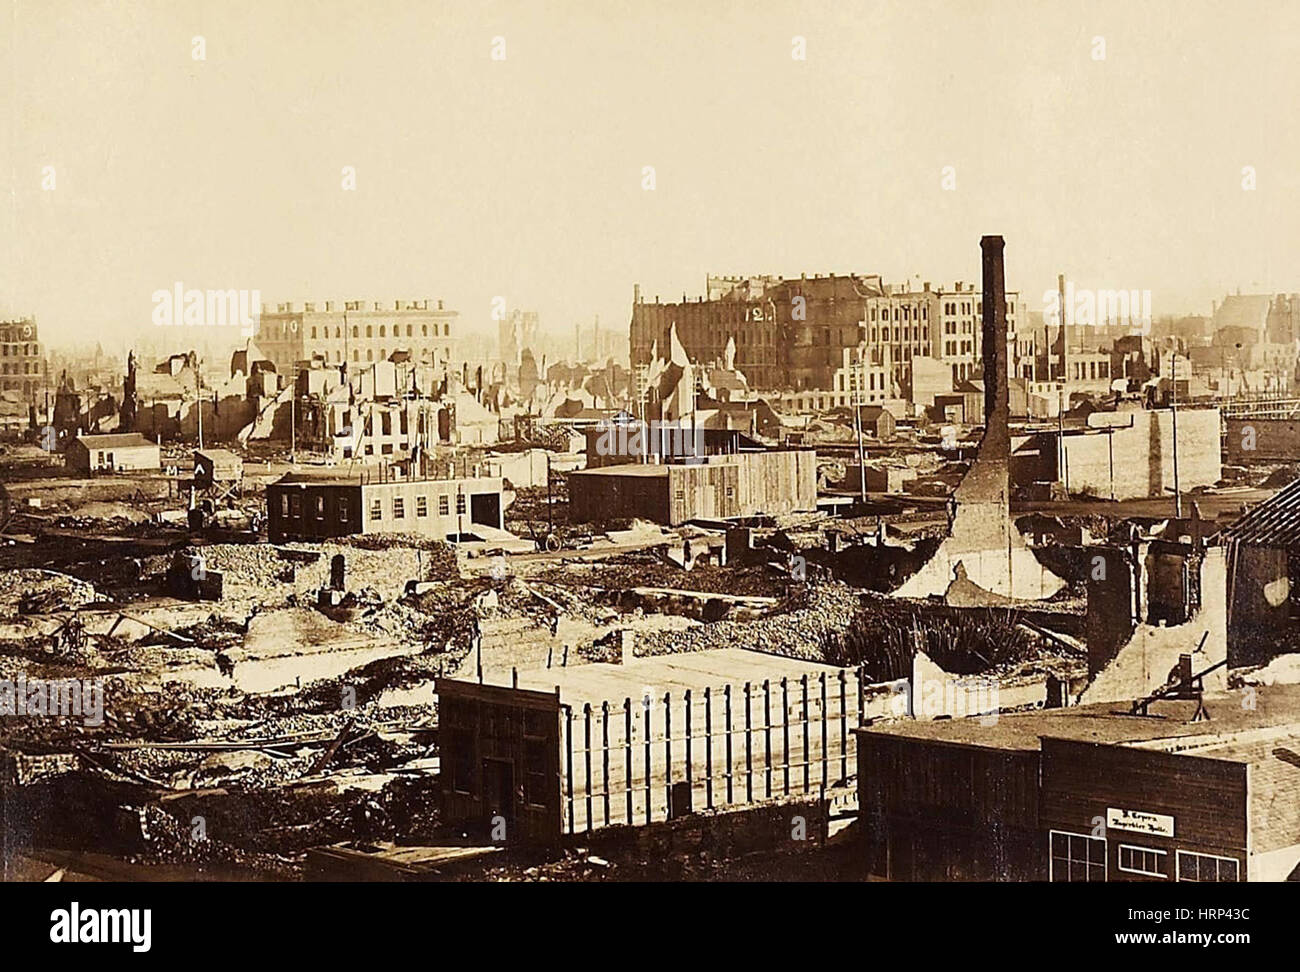 The Great Chicago Fire, 1871 - Stock Image